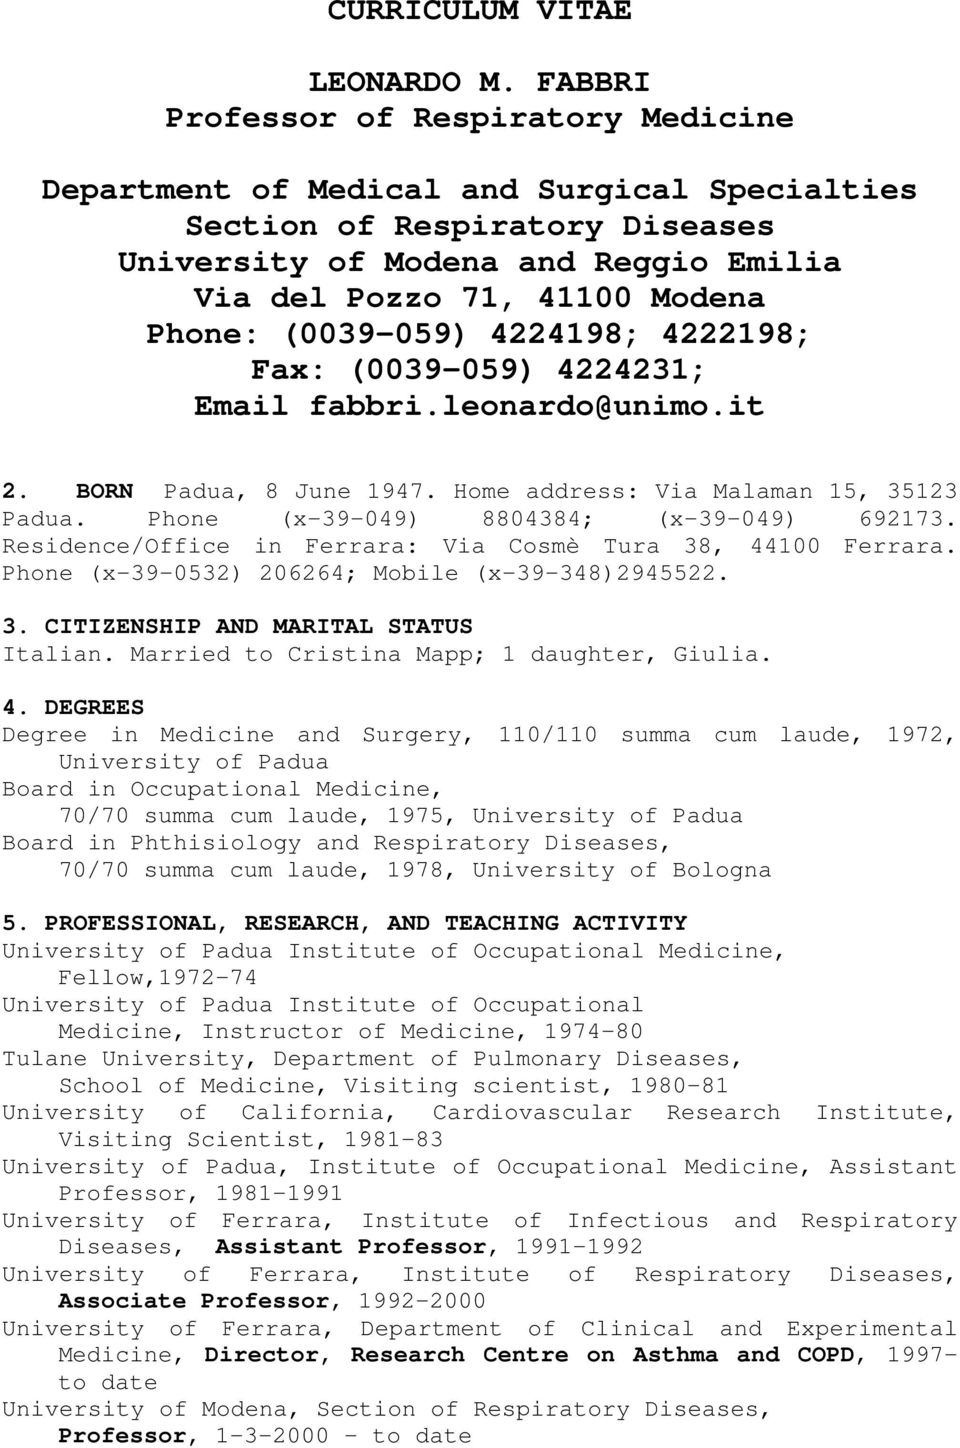 (0039-059) 4224198; 4222198; Fax: (0039-059) 4224231; Email fabbri.leonardo@unimo.it 2. BORN Padua, 8 June 1947. Home address: Via Malaman 15, 35123 Padua. Phone (x-39-049) 8804384; (x-39-049) 692173.